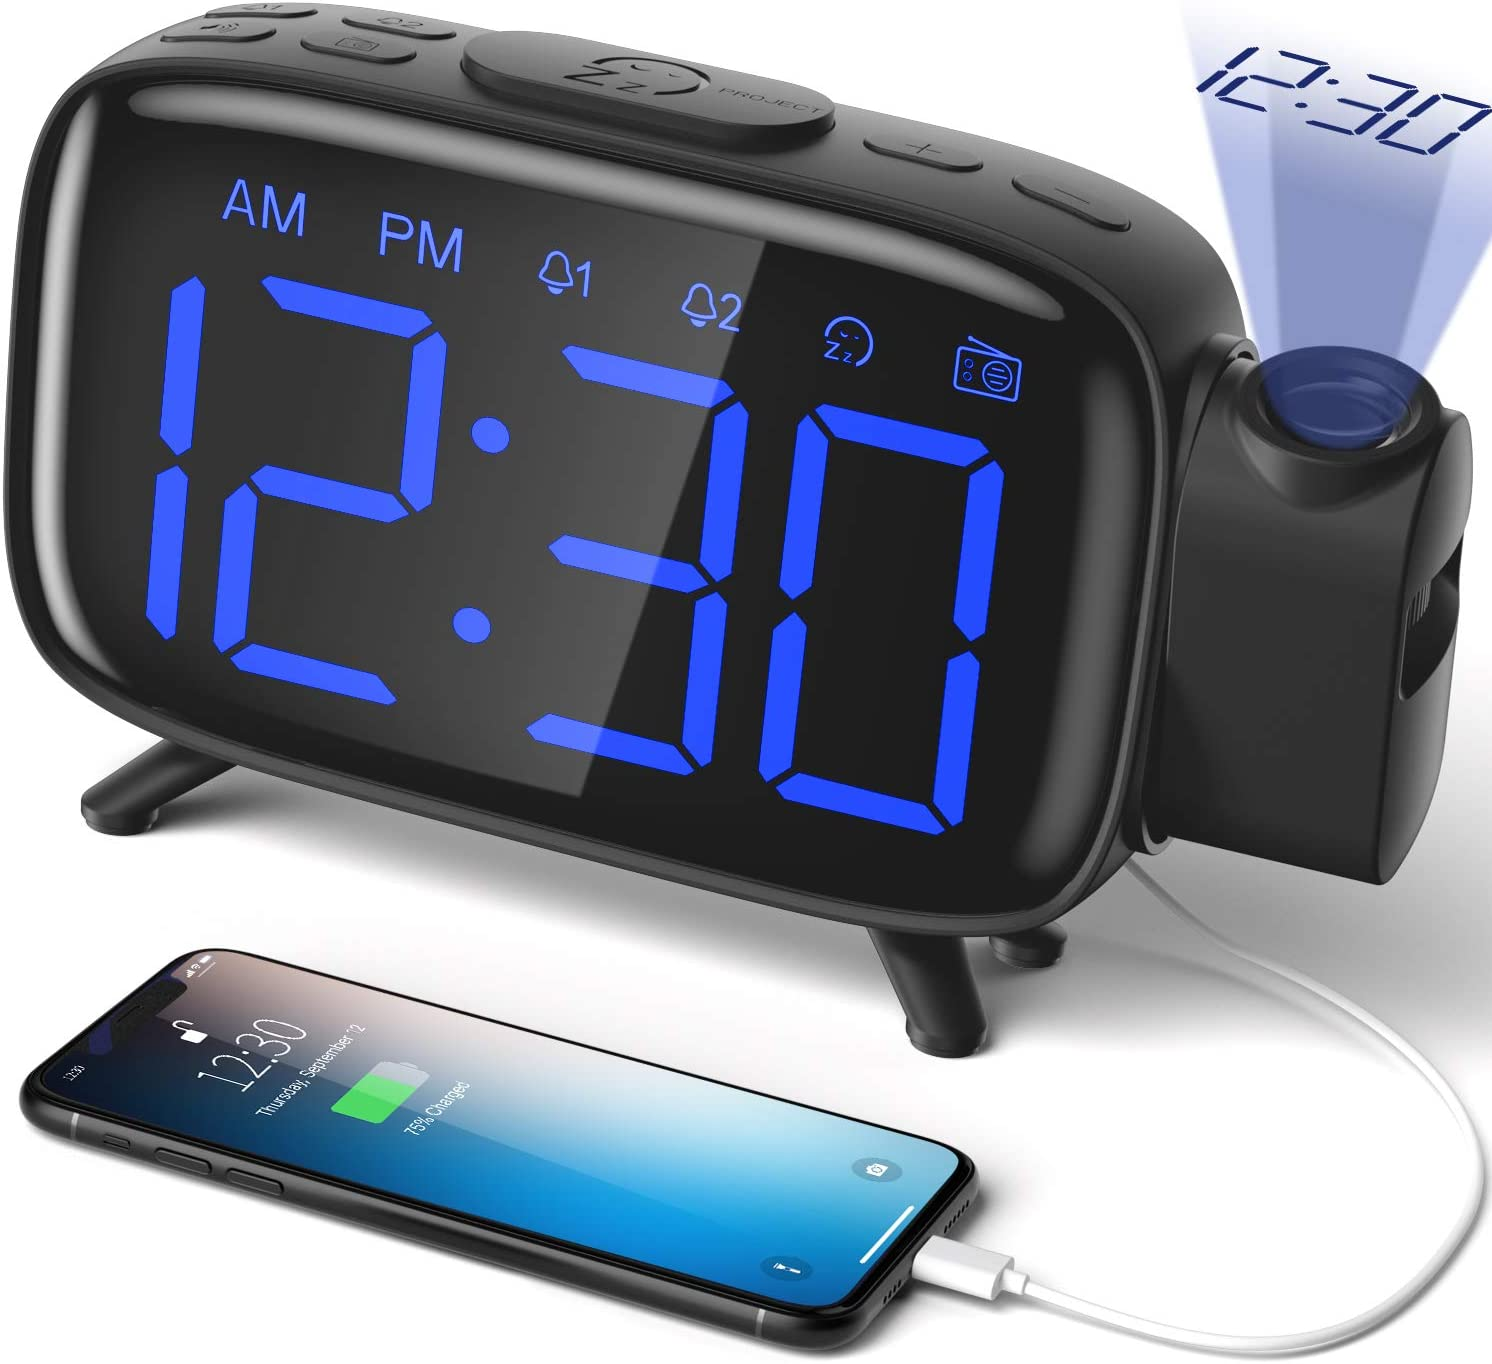 ELEHOT Projection Alarm Clock Radio Alarm Clock Digital Clock with Power Adapter Alarm Clocks for Bedrooms